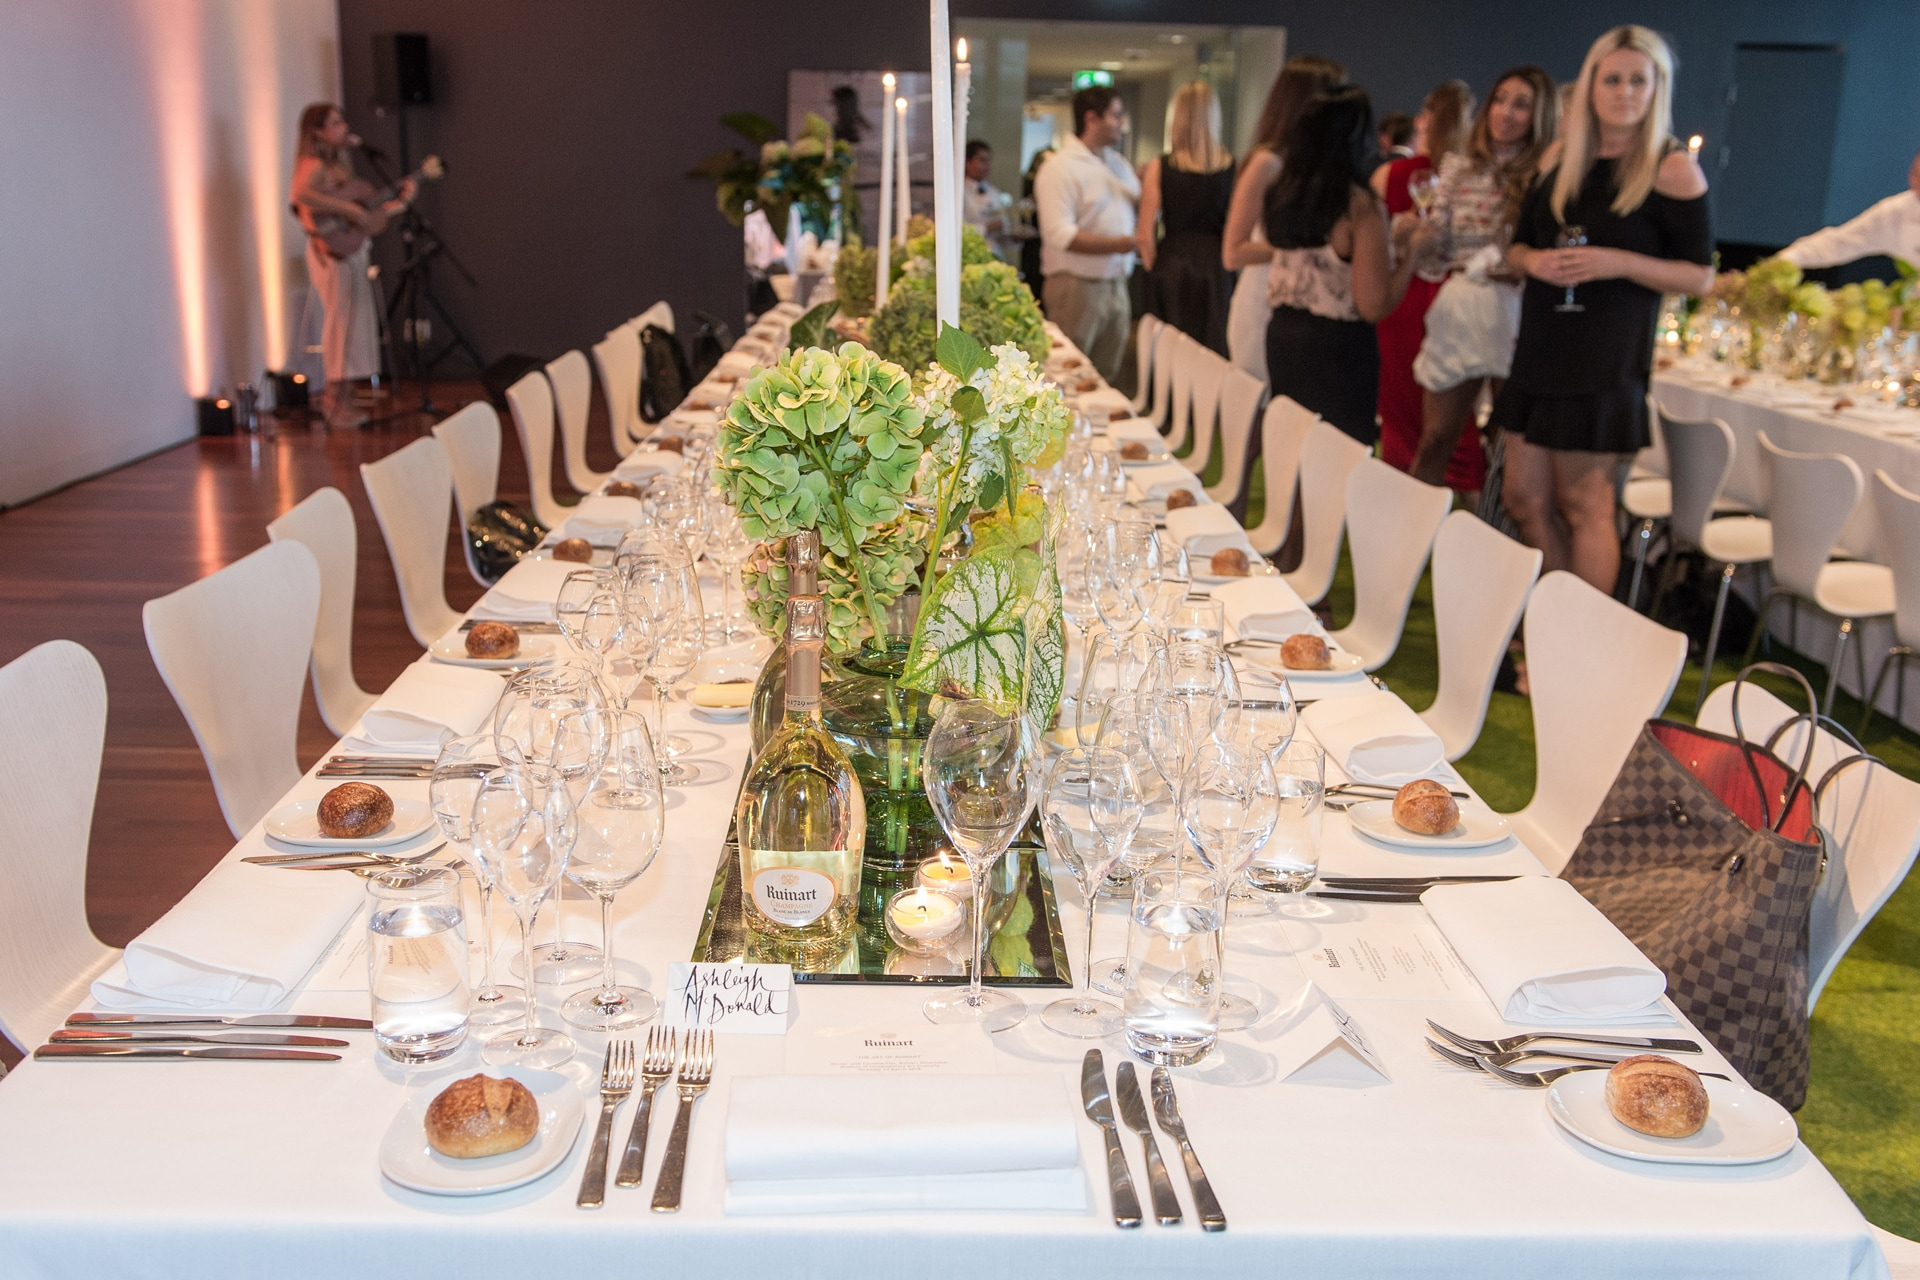 Inside the Ruinart dinner at the Museum of Contemporary Art Australia